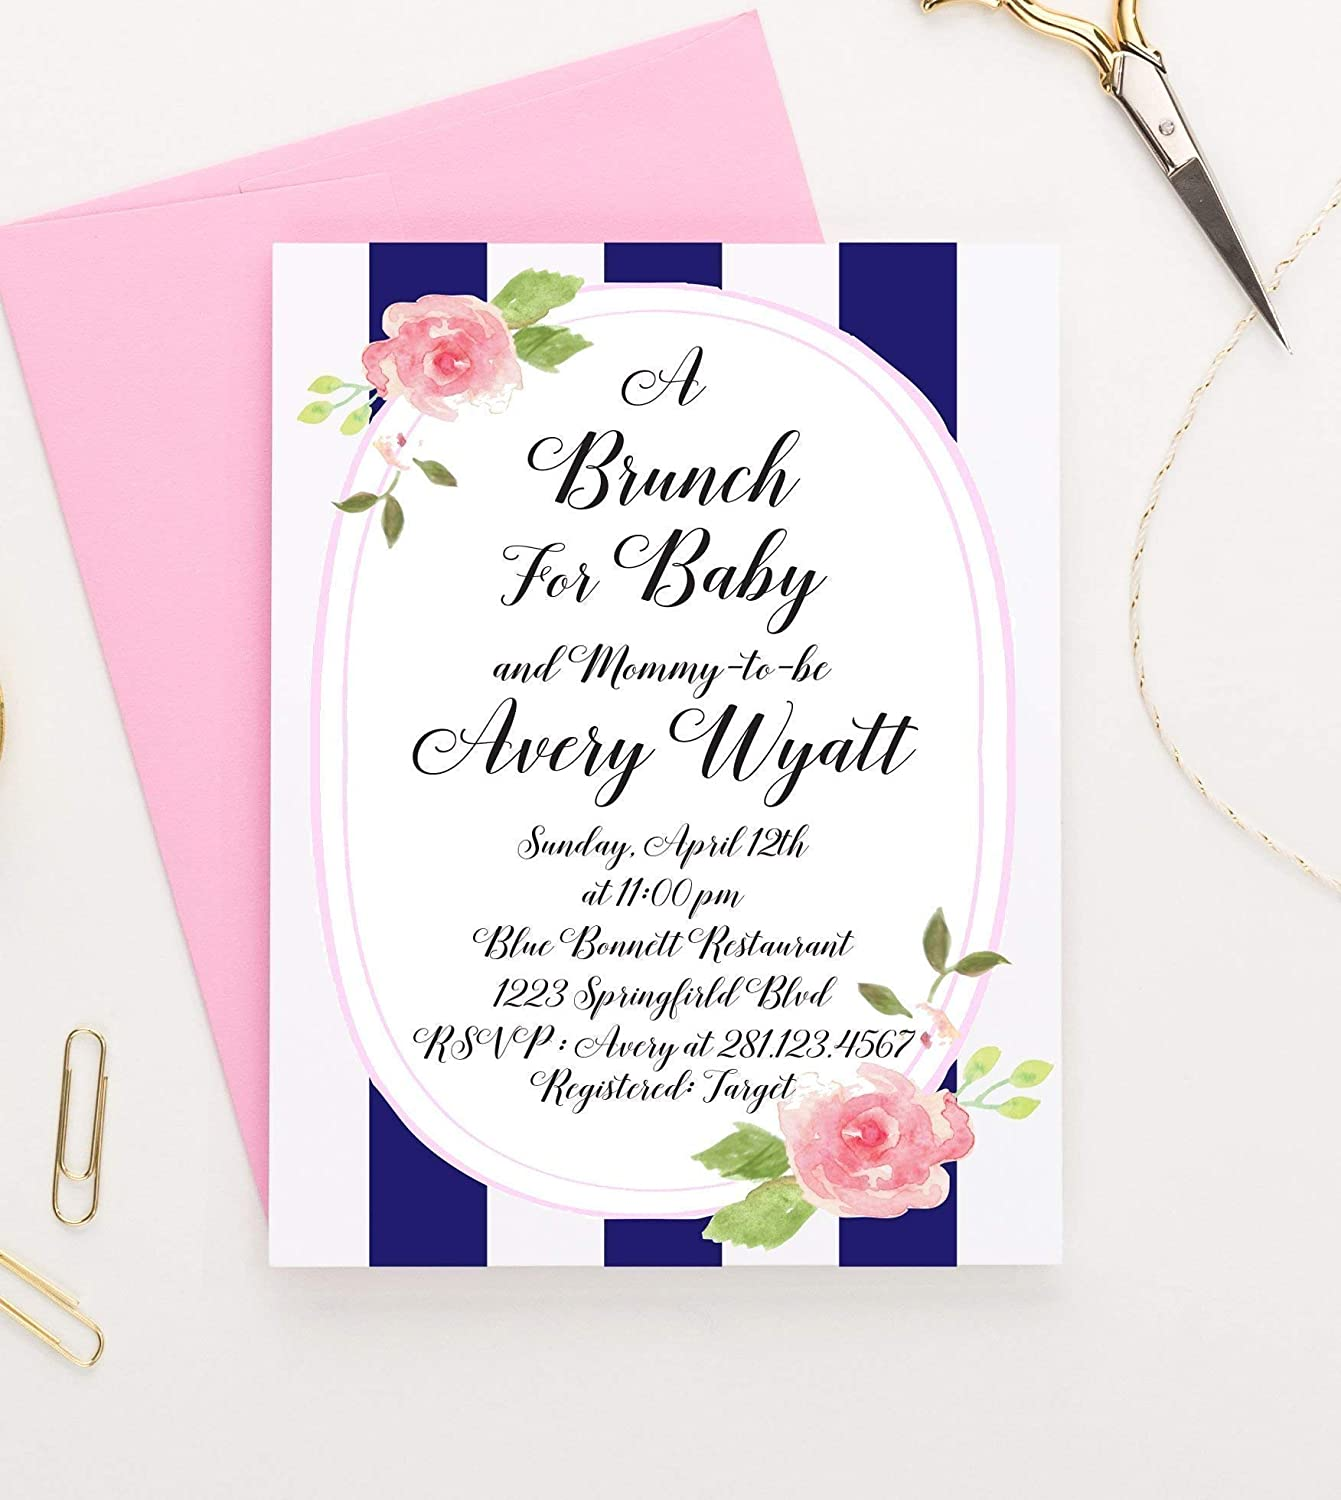 Brunch for Baby Invitations, Floral Baby Shower Invitations, Rustic Baby  Shower Invitations, Floral Baby Shower Invites, Rustic Baby Shower Invites,  ...